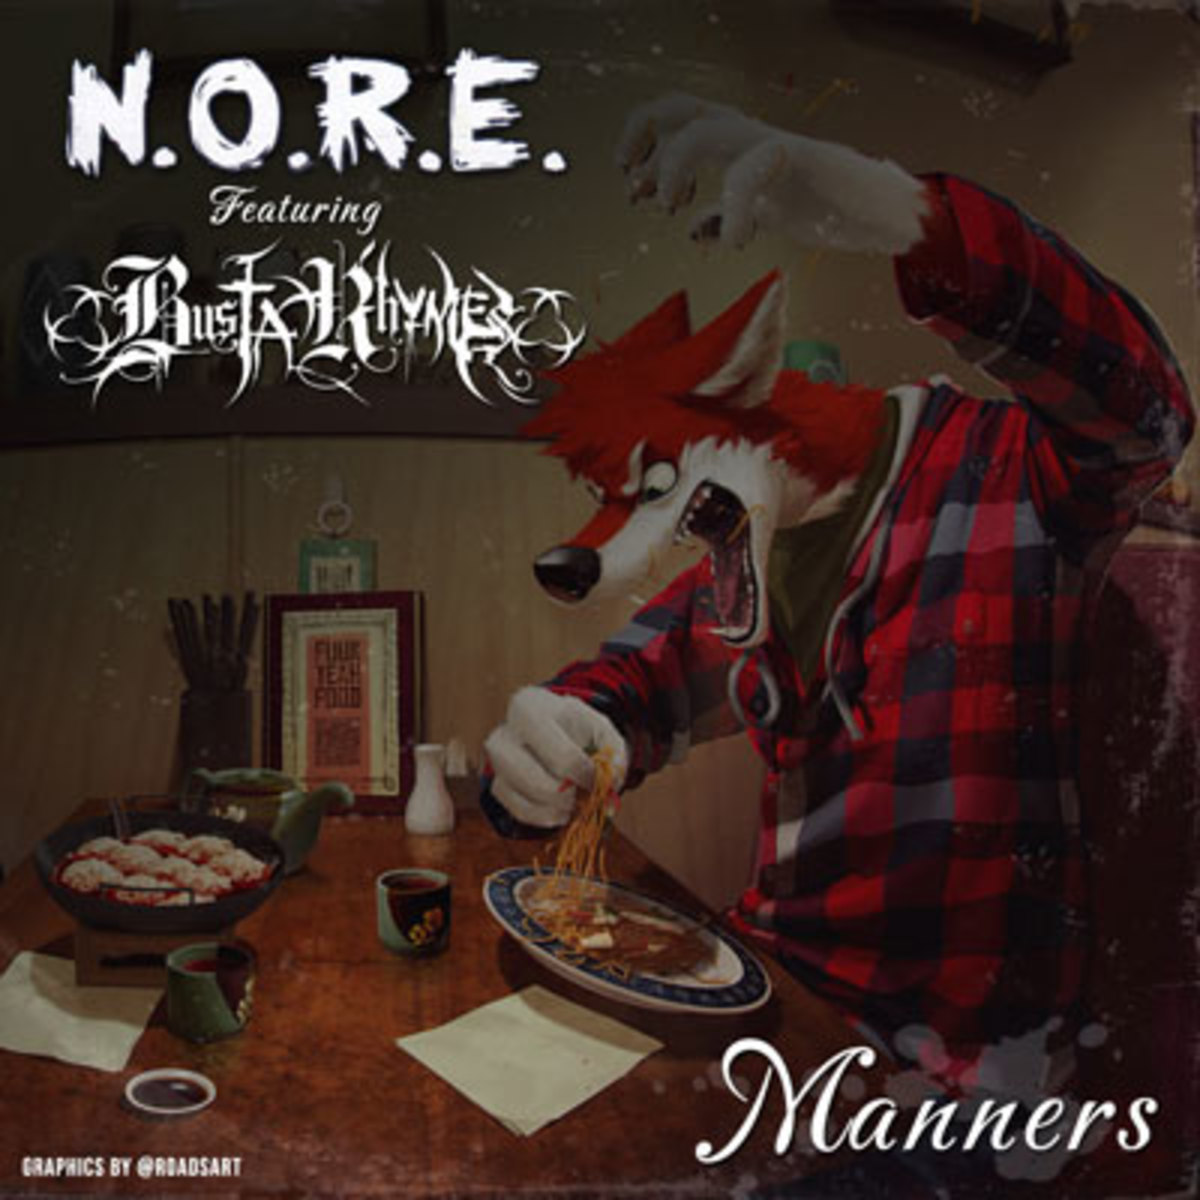 nore-manners.jpg